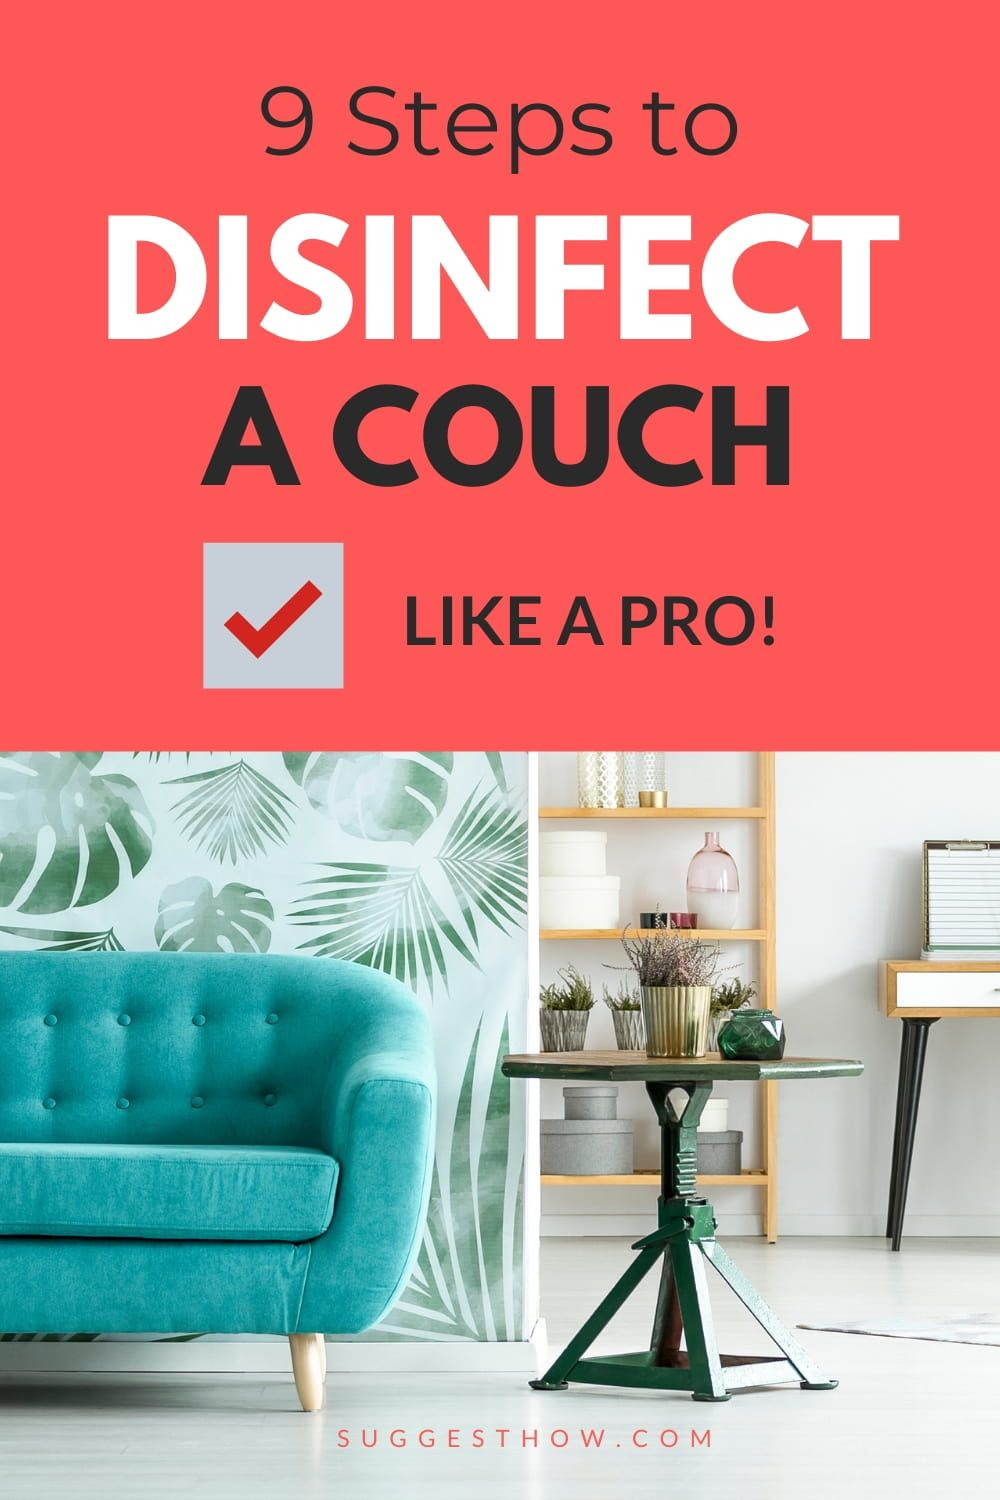 How To Disinfect A Couch Follow 9 Steps Properly In 2020 With